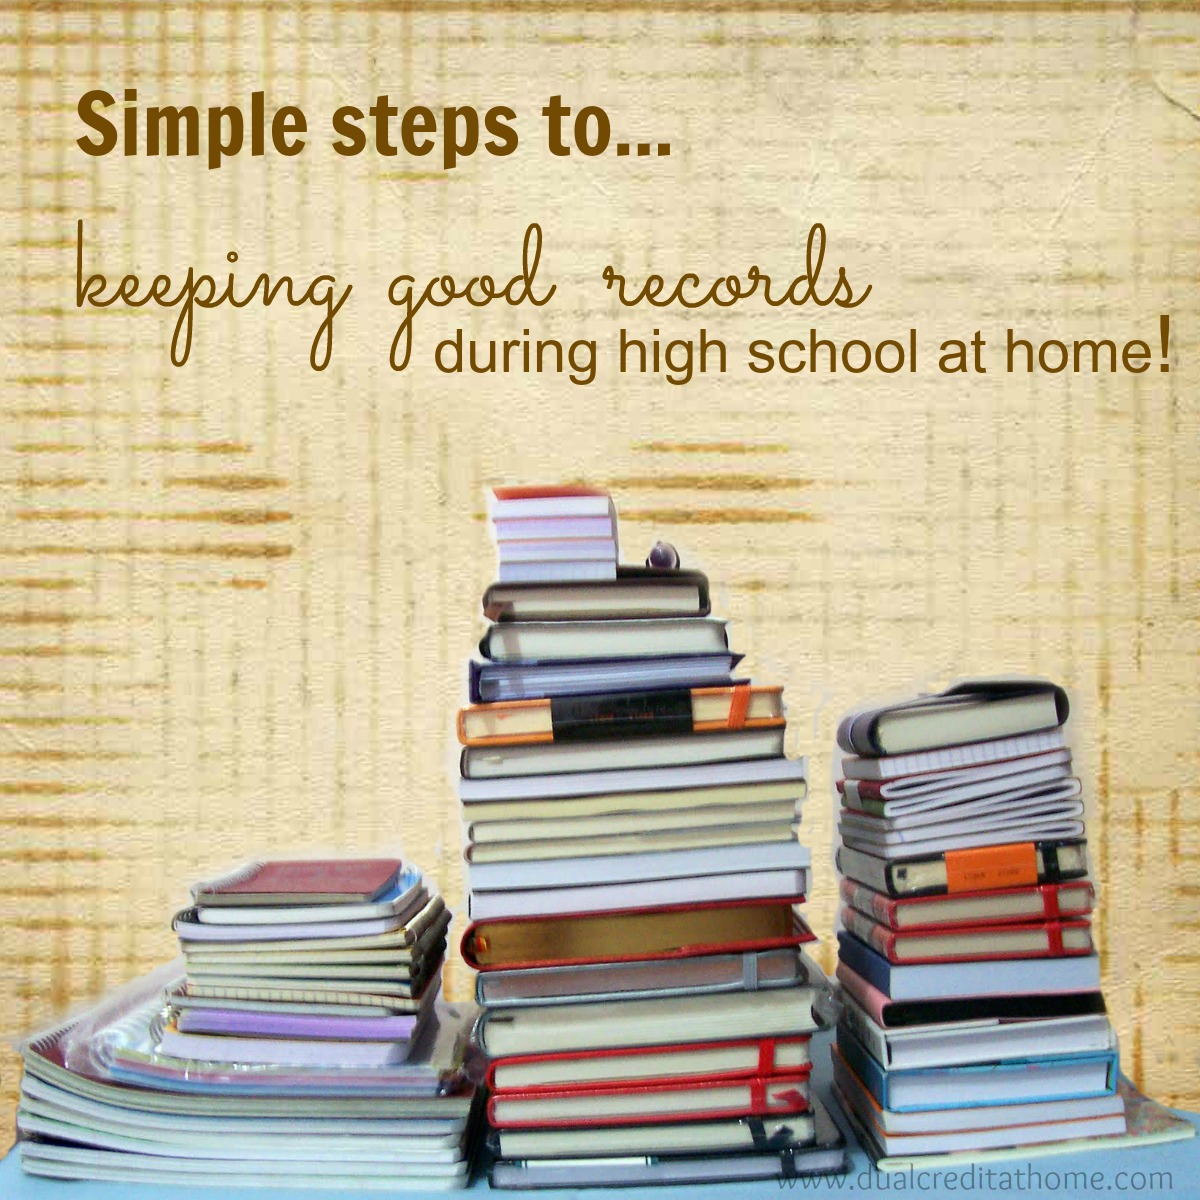 How to Keep Good Records During High School at Home